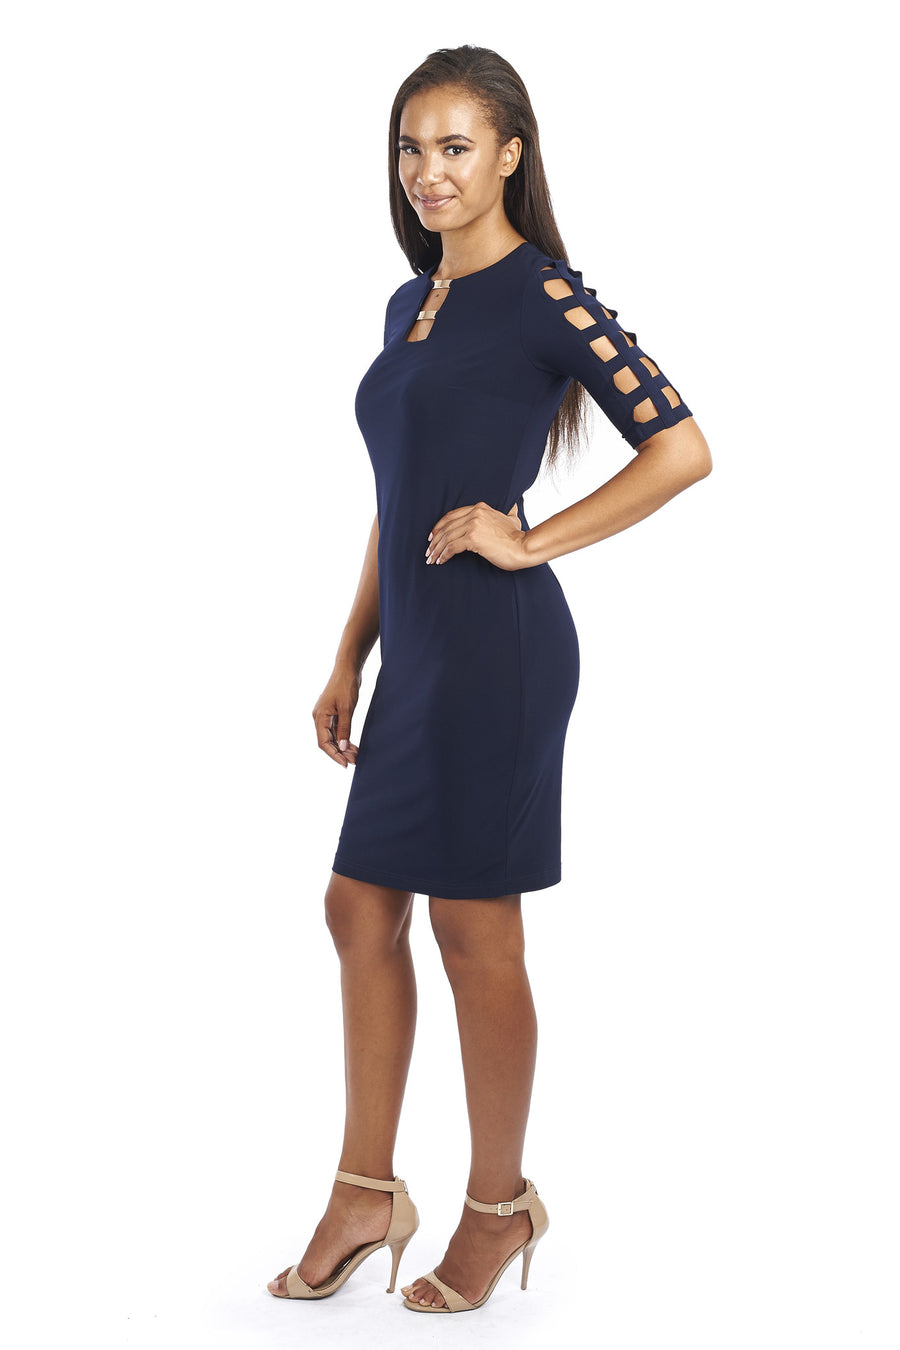 Cocktail Dress with Laser Cut-out sleeves